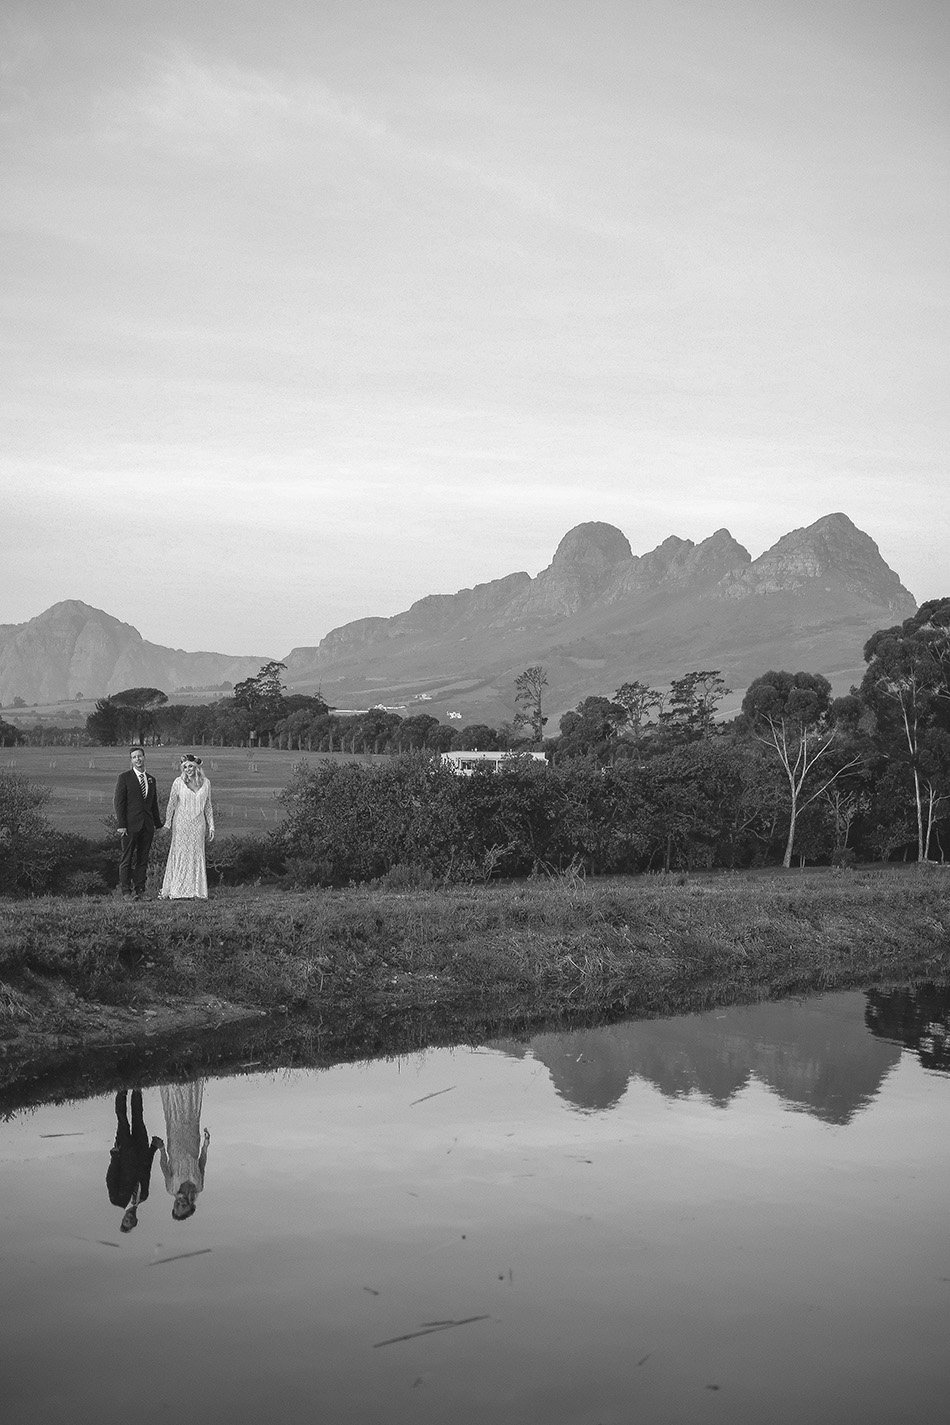 Nadia&Charl {Married@Winery Road Forest, R44}-2064